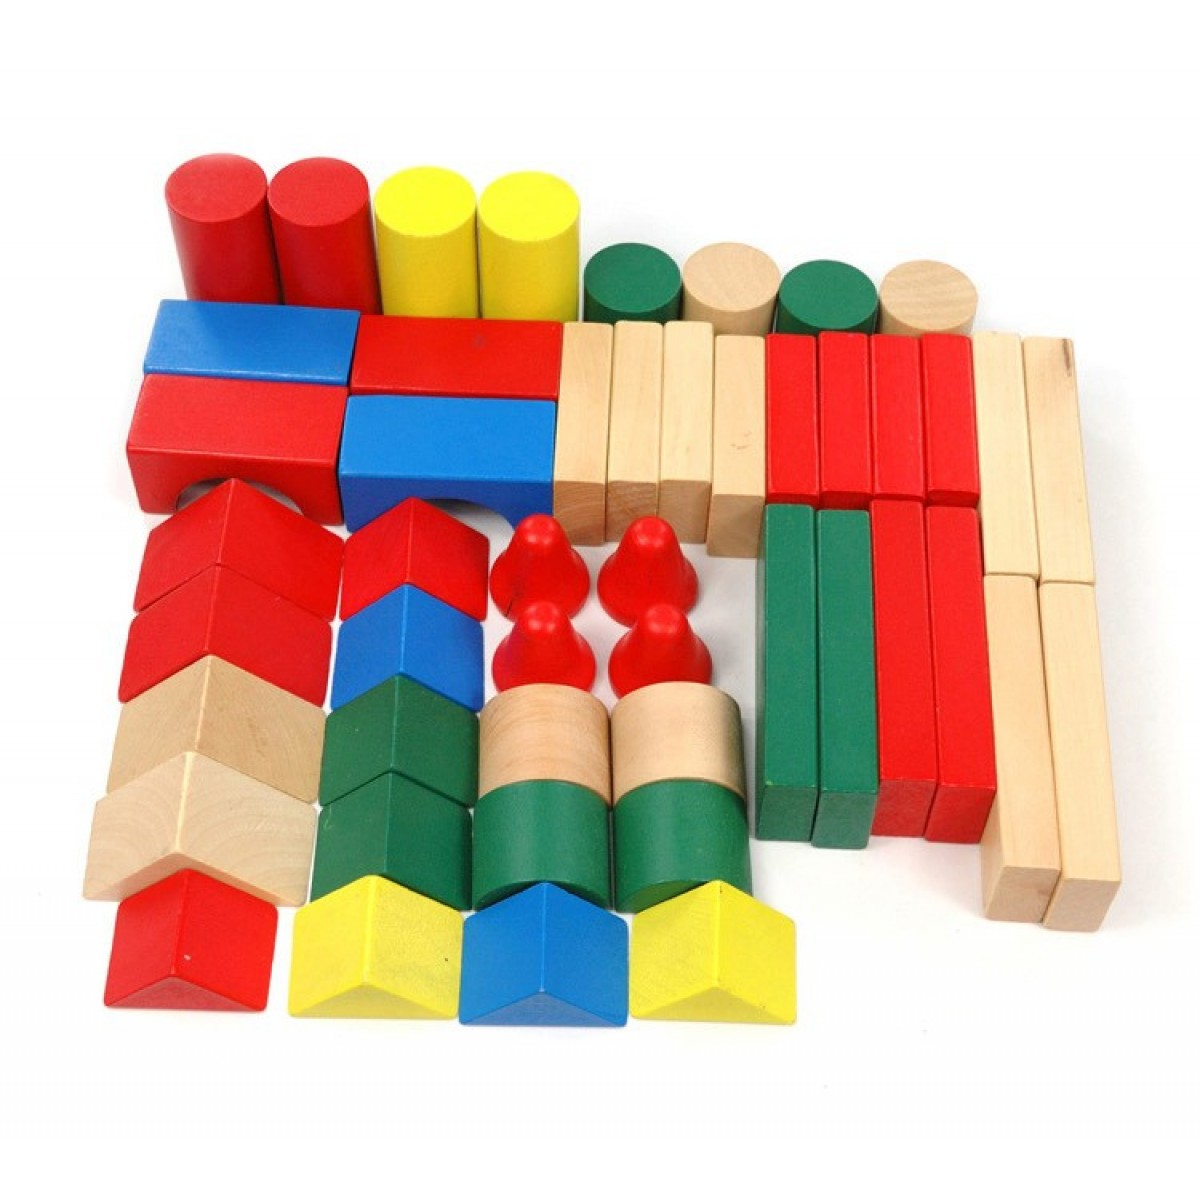 Colored blocks as baby's first birthday gift ideas